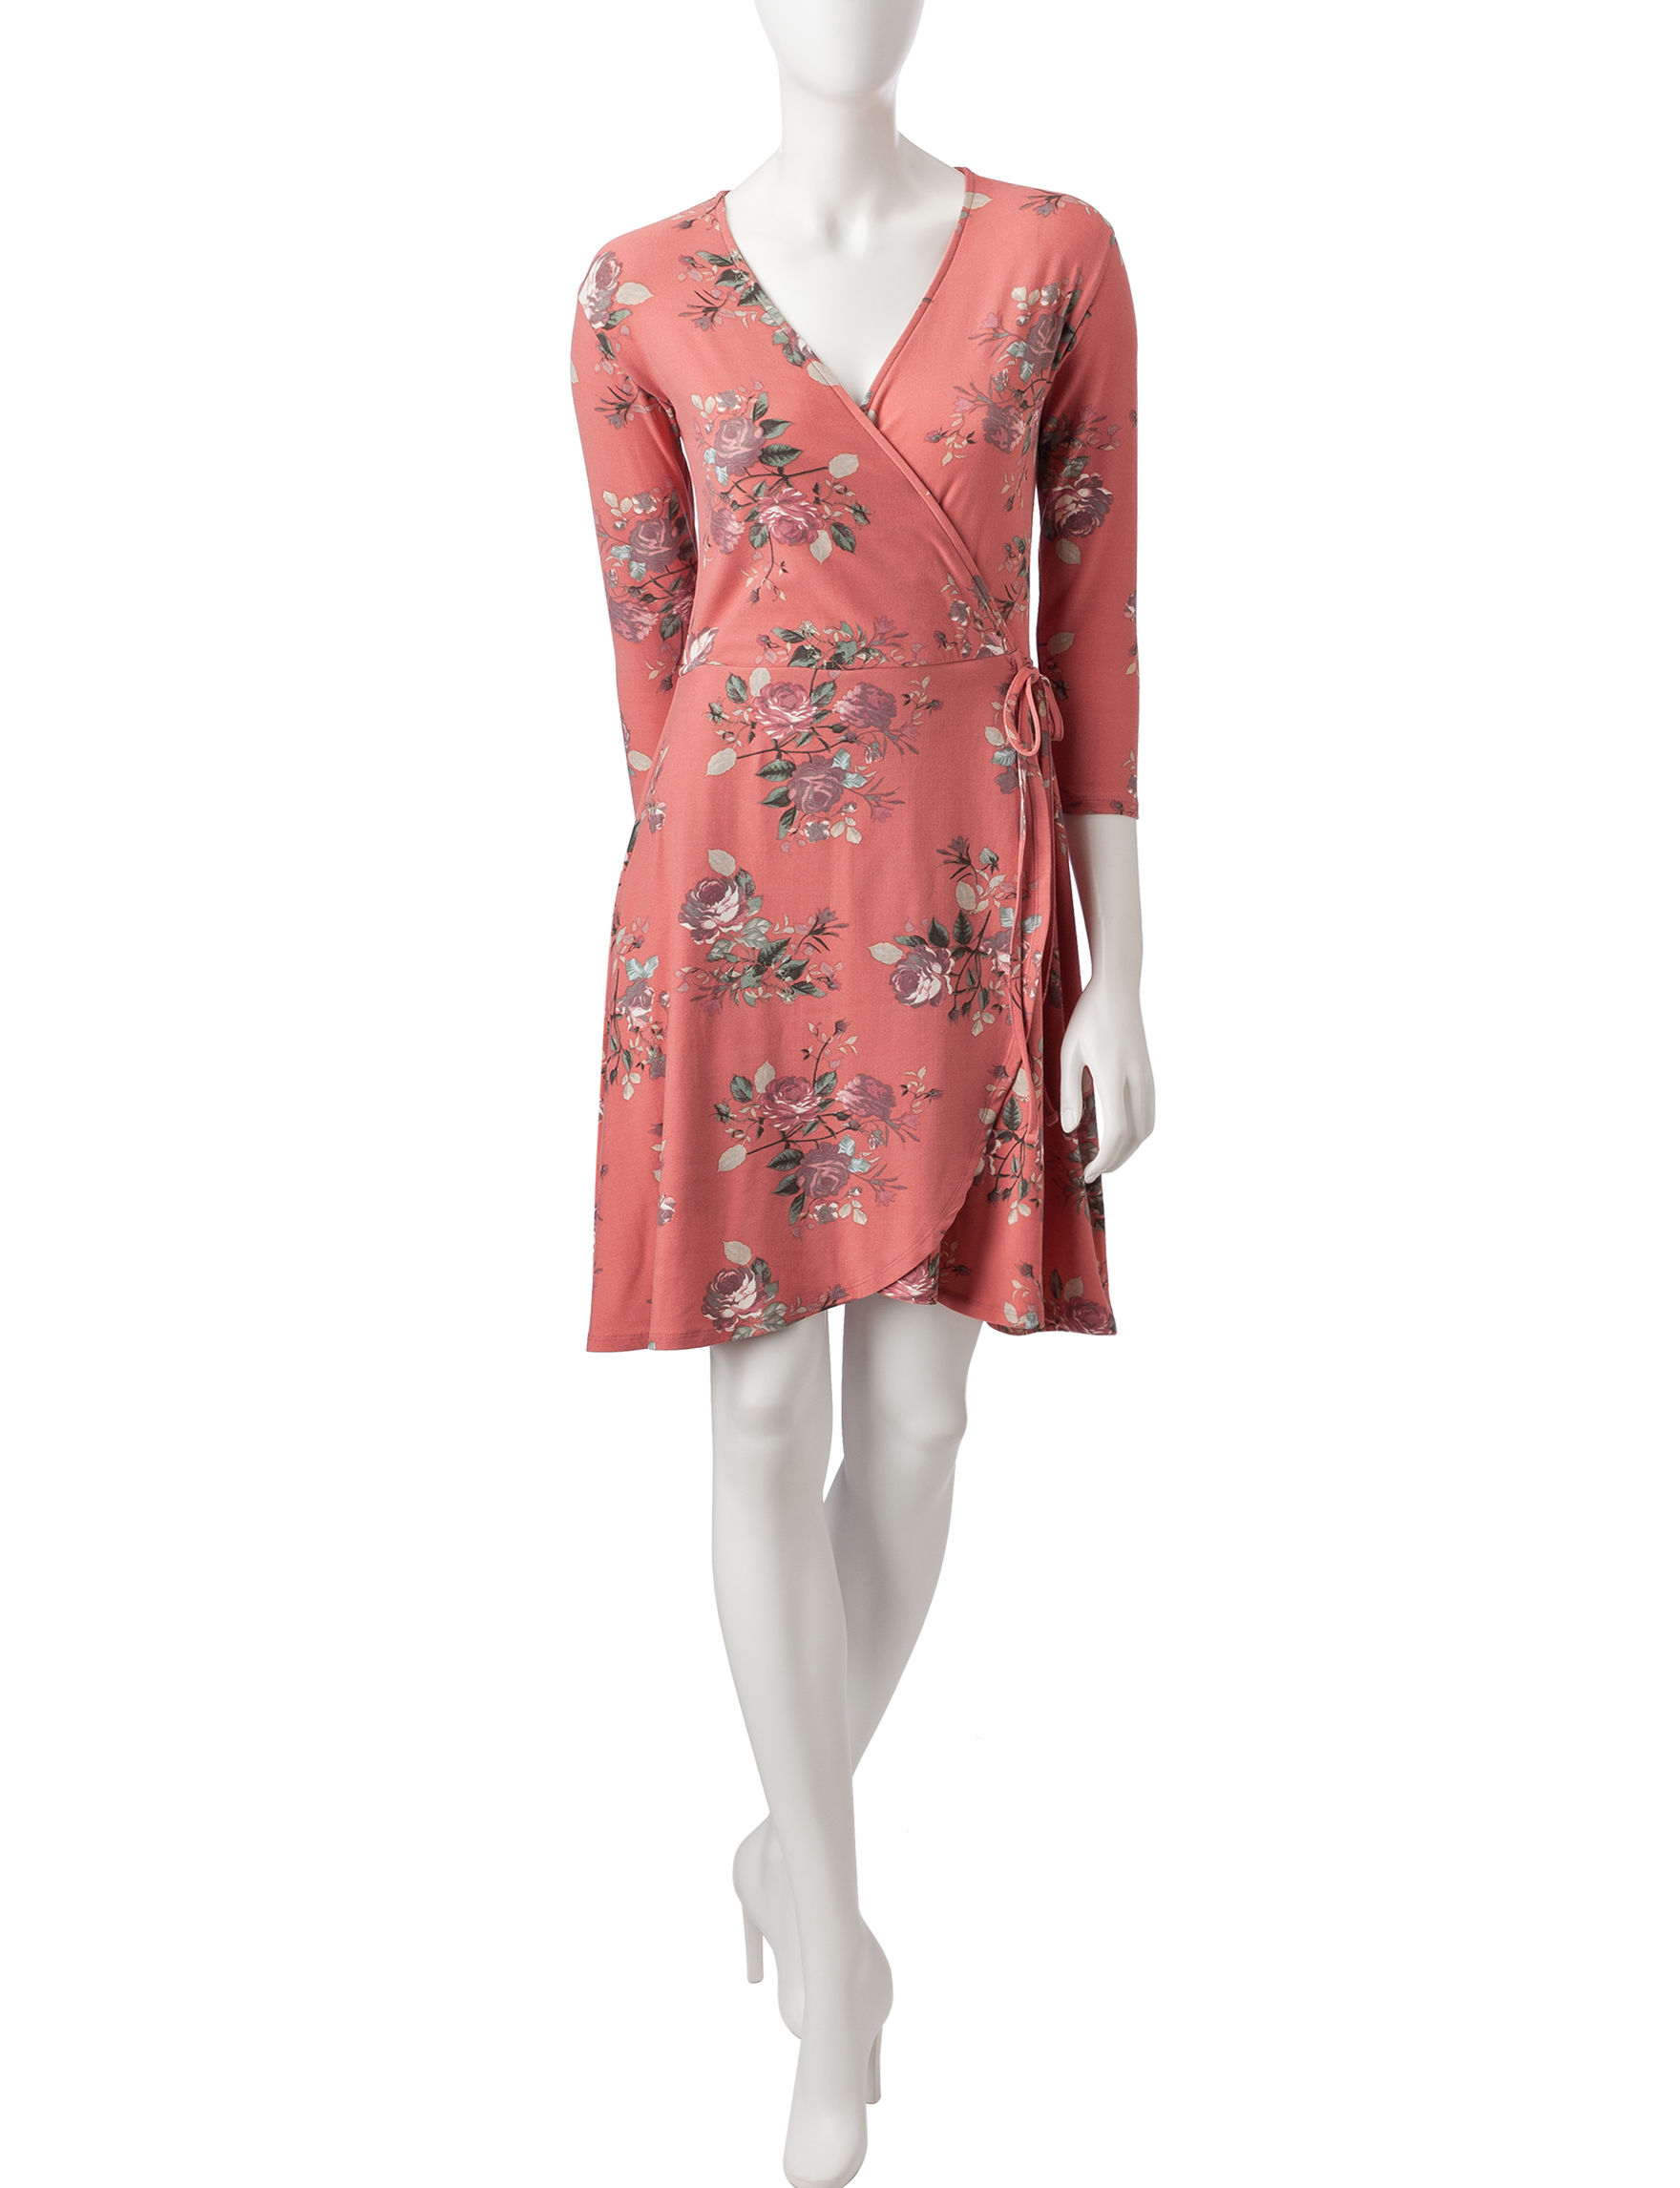 Wishful Park Desert Rose Everyday & Casual Fit & Flare Dresses